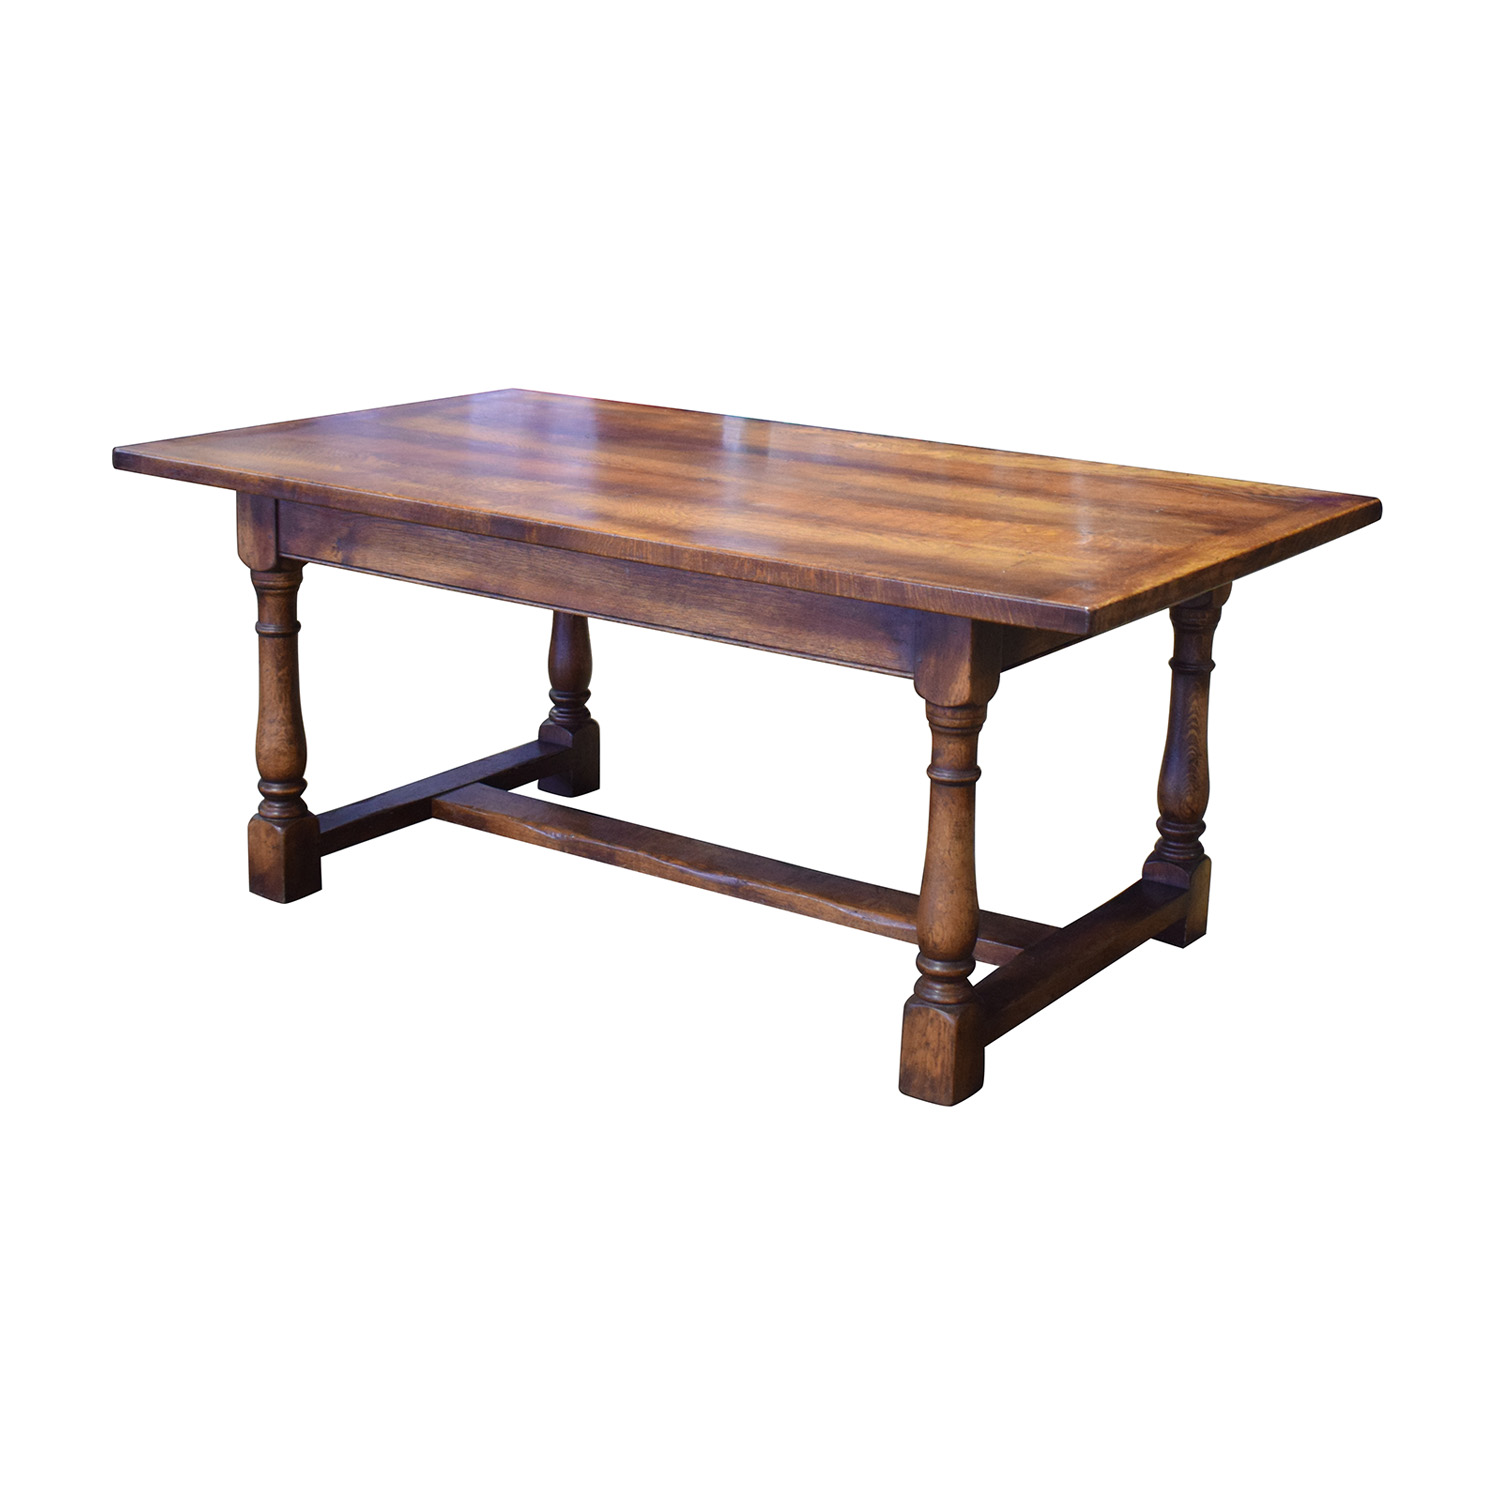 Fauld Refectory Wood Dining Table Fauld